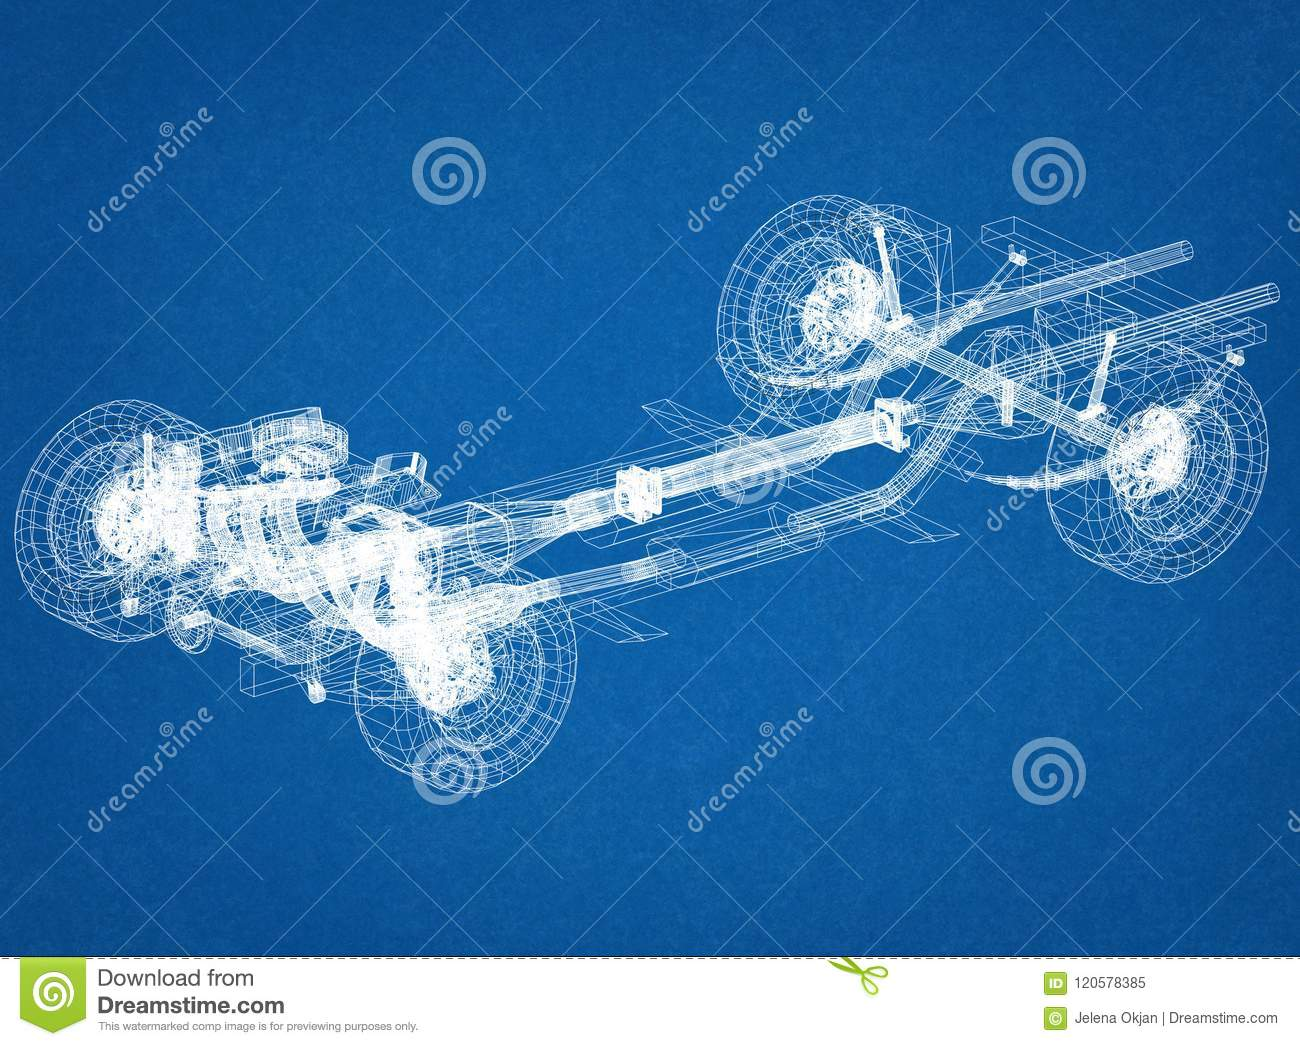 Car chassis and engine design blueprint stock illustration download car chassis and engine design blueprint stock illustration illustration of design engine malvernweather Images